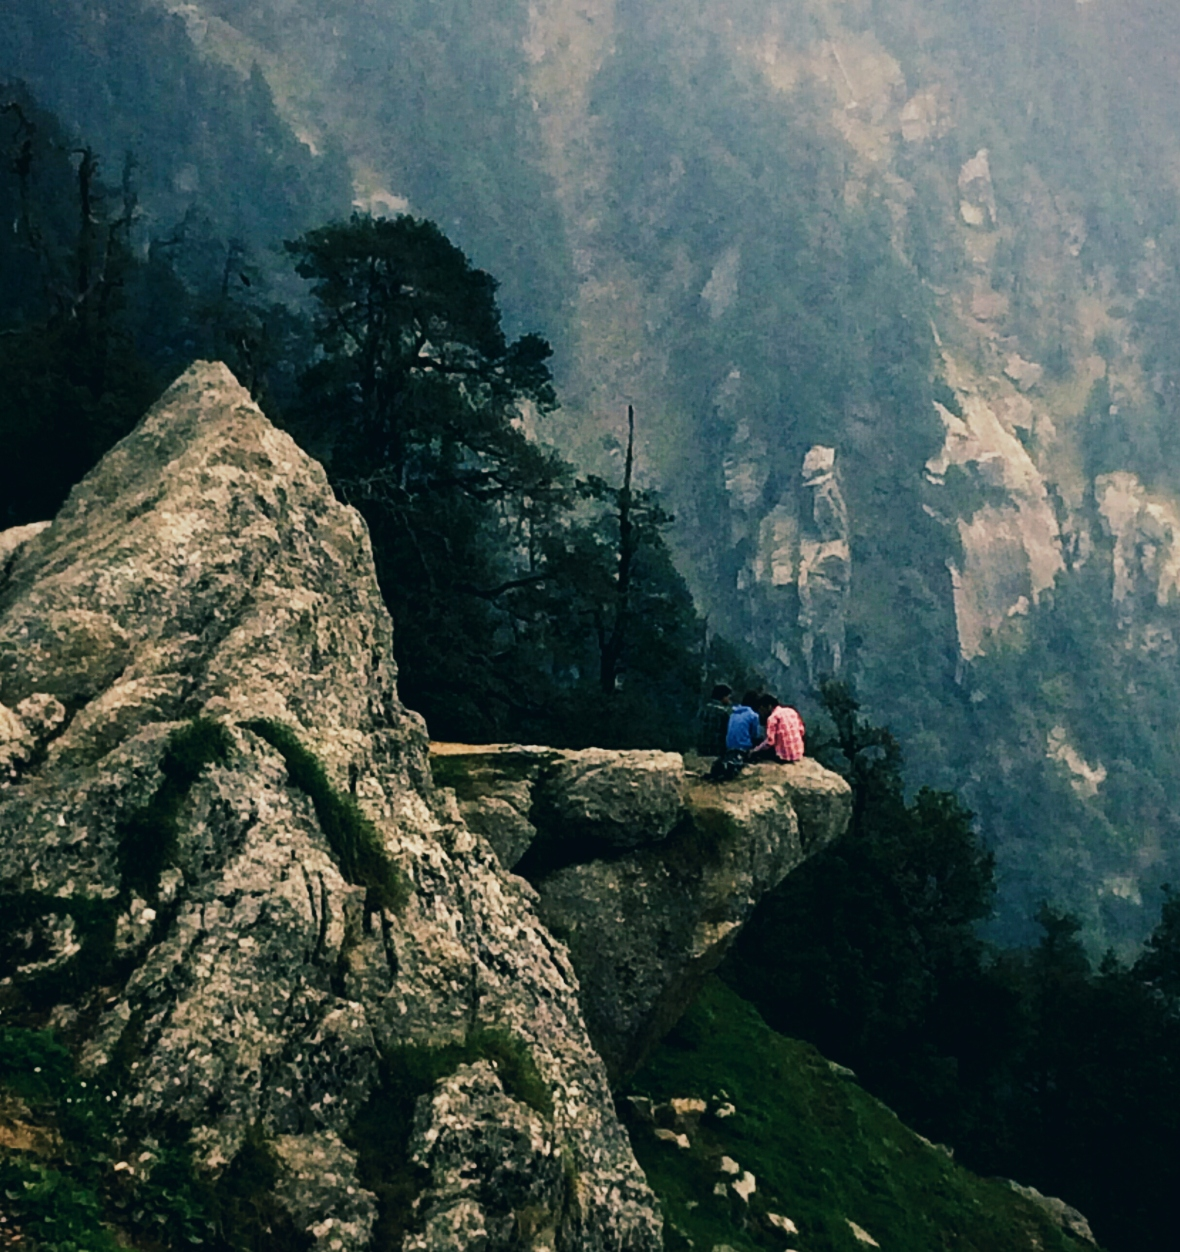 On the way to Triund